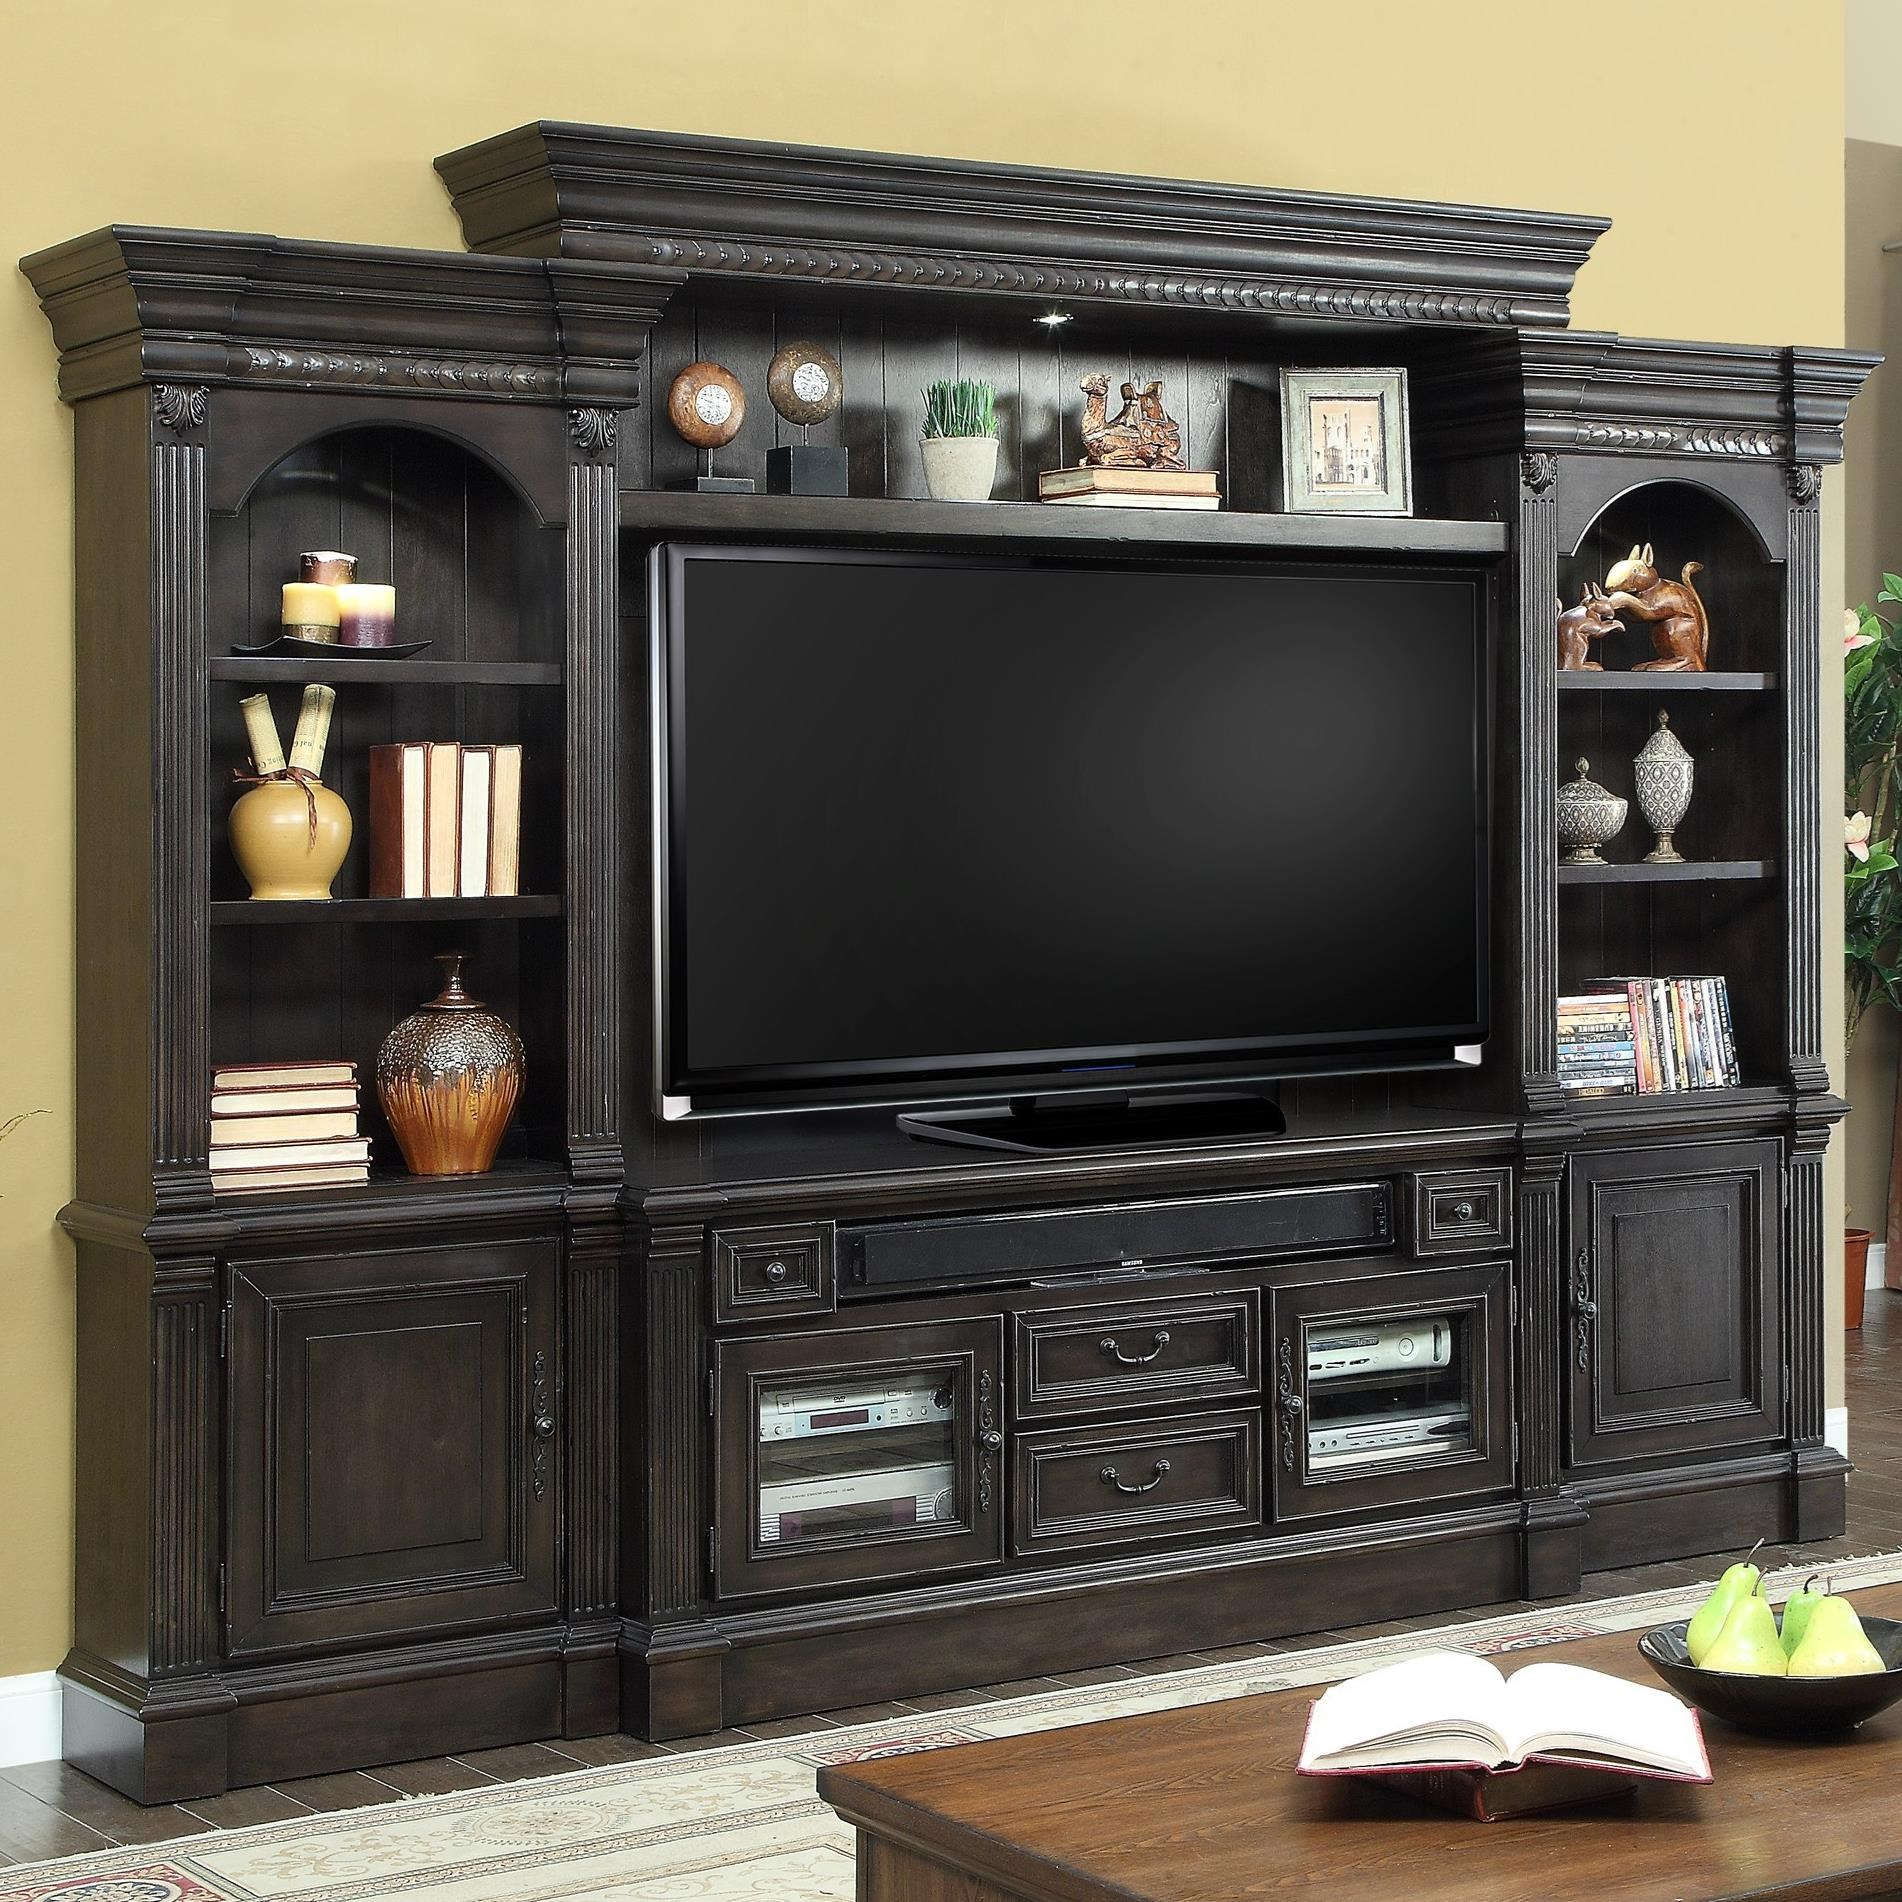 All Entertainment Center Furniture